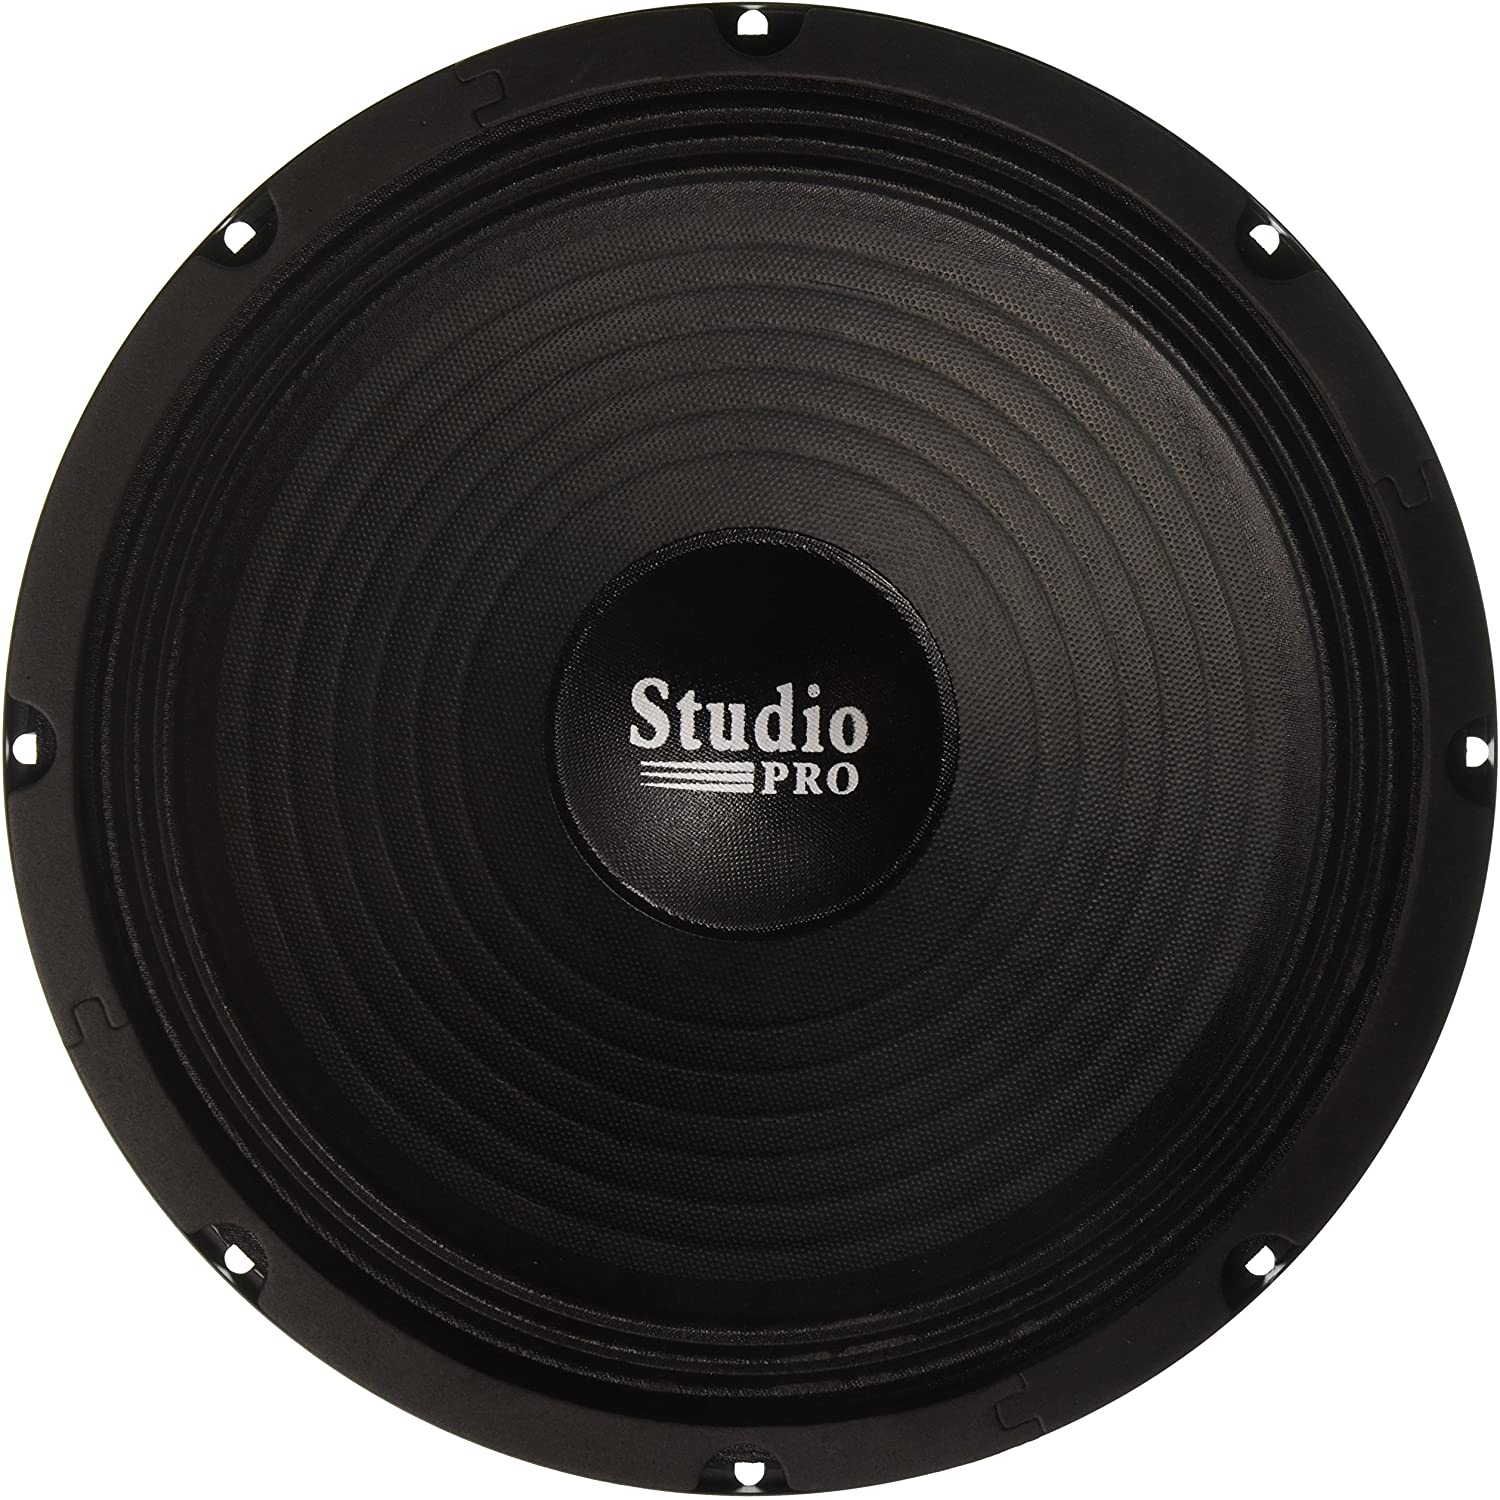 Studio Pro 10 Inch Car Subwoofer Speaker